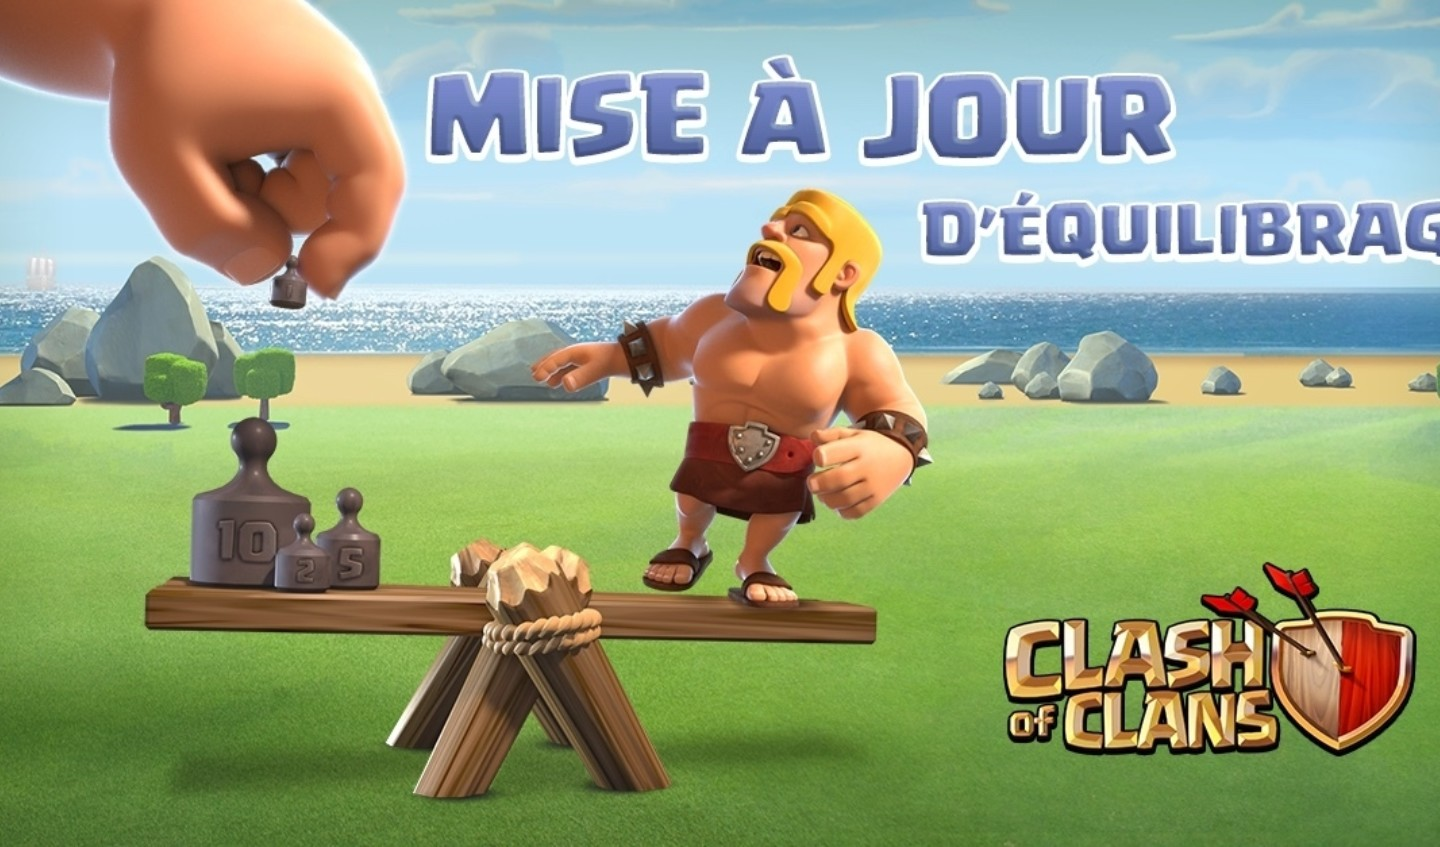 Mise a jour equilibrage mai 2017 clash of clans